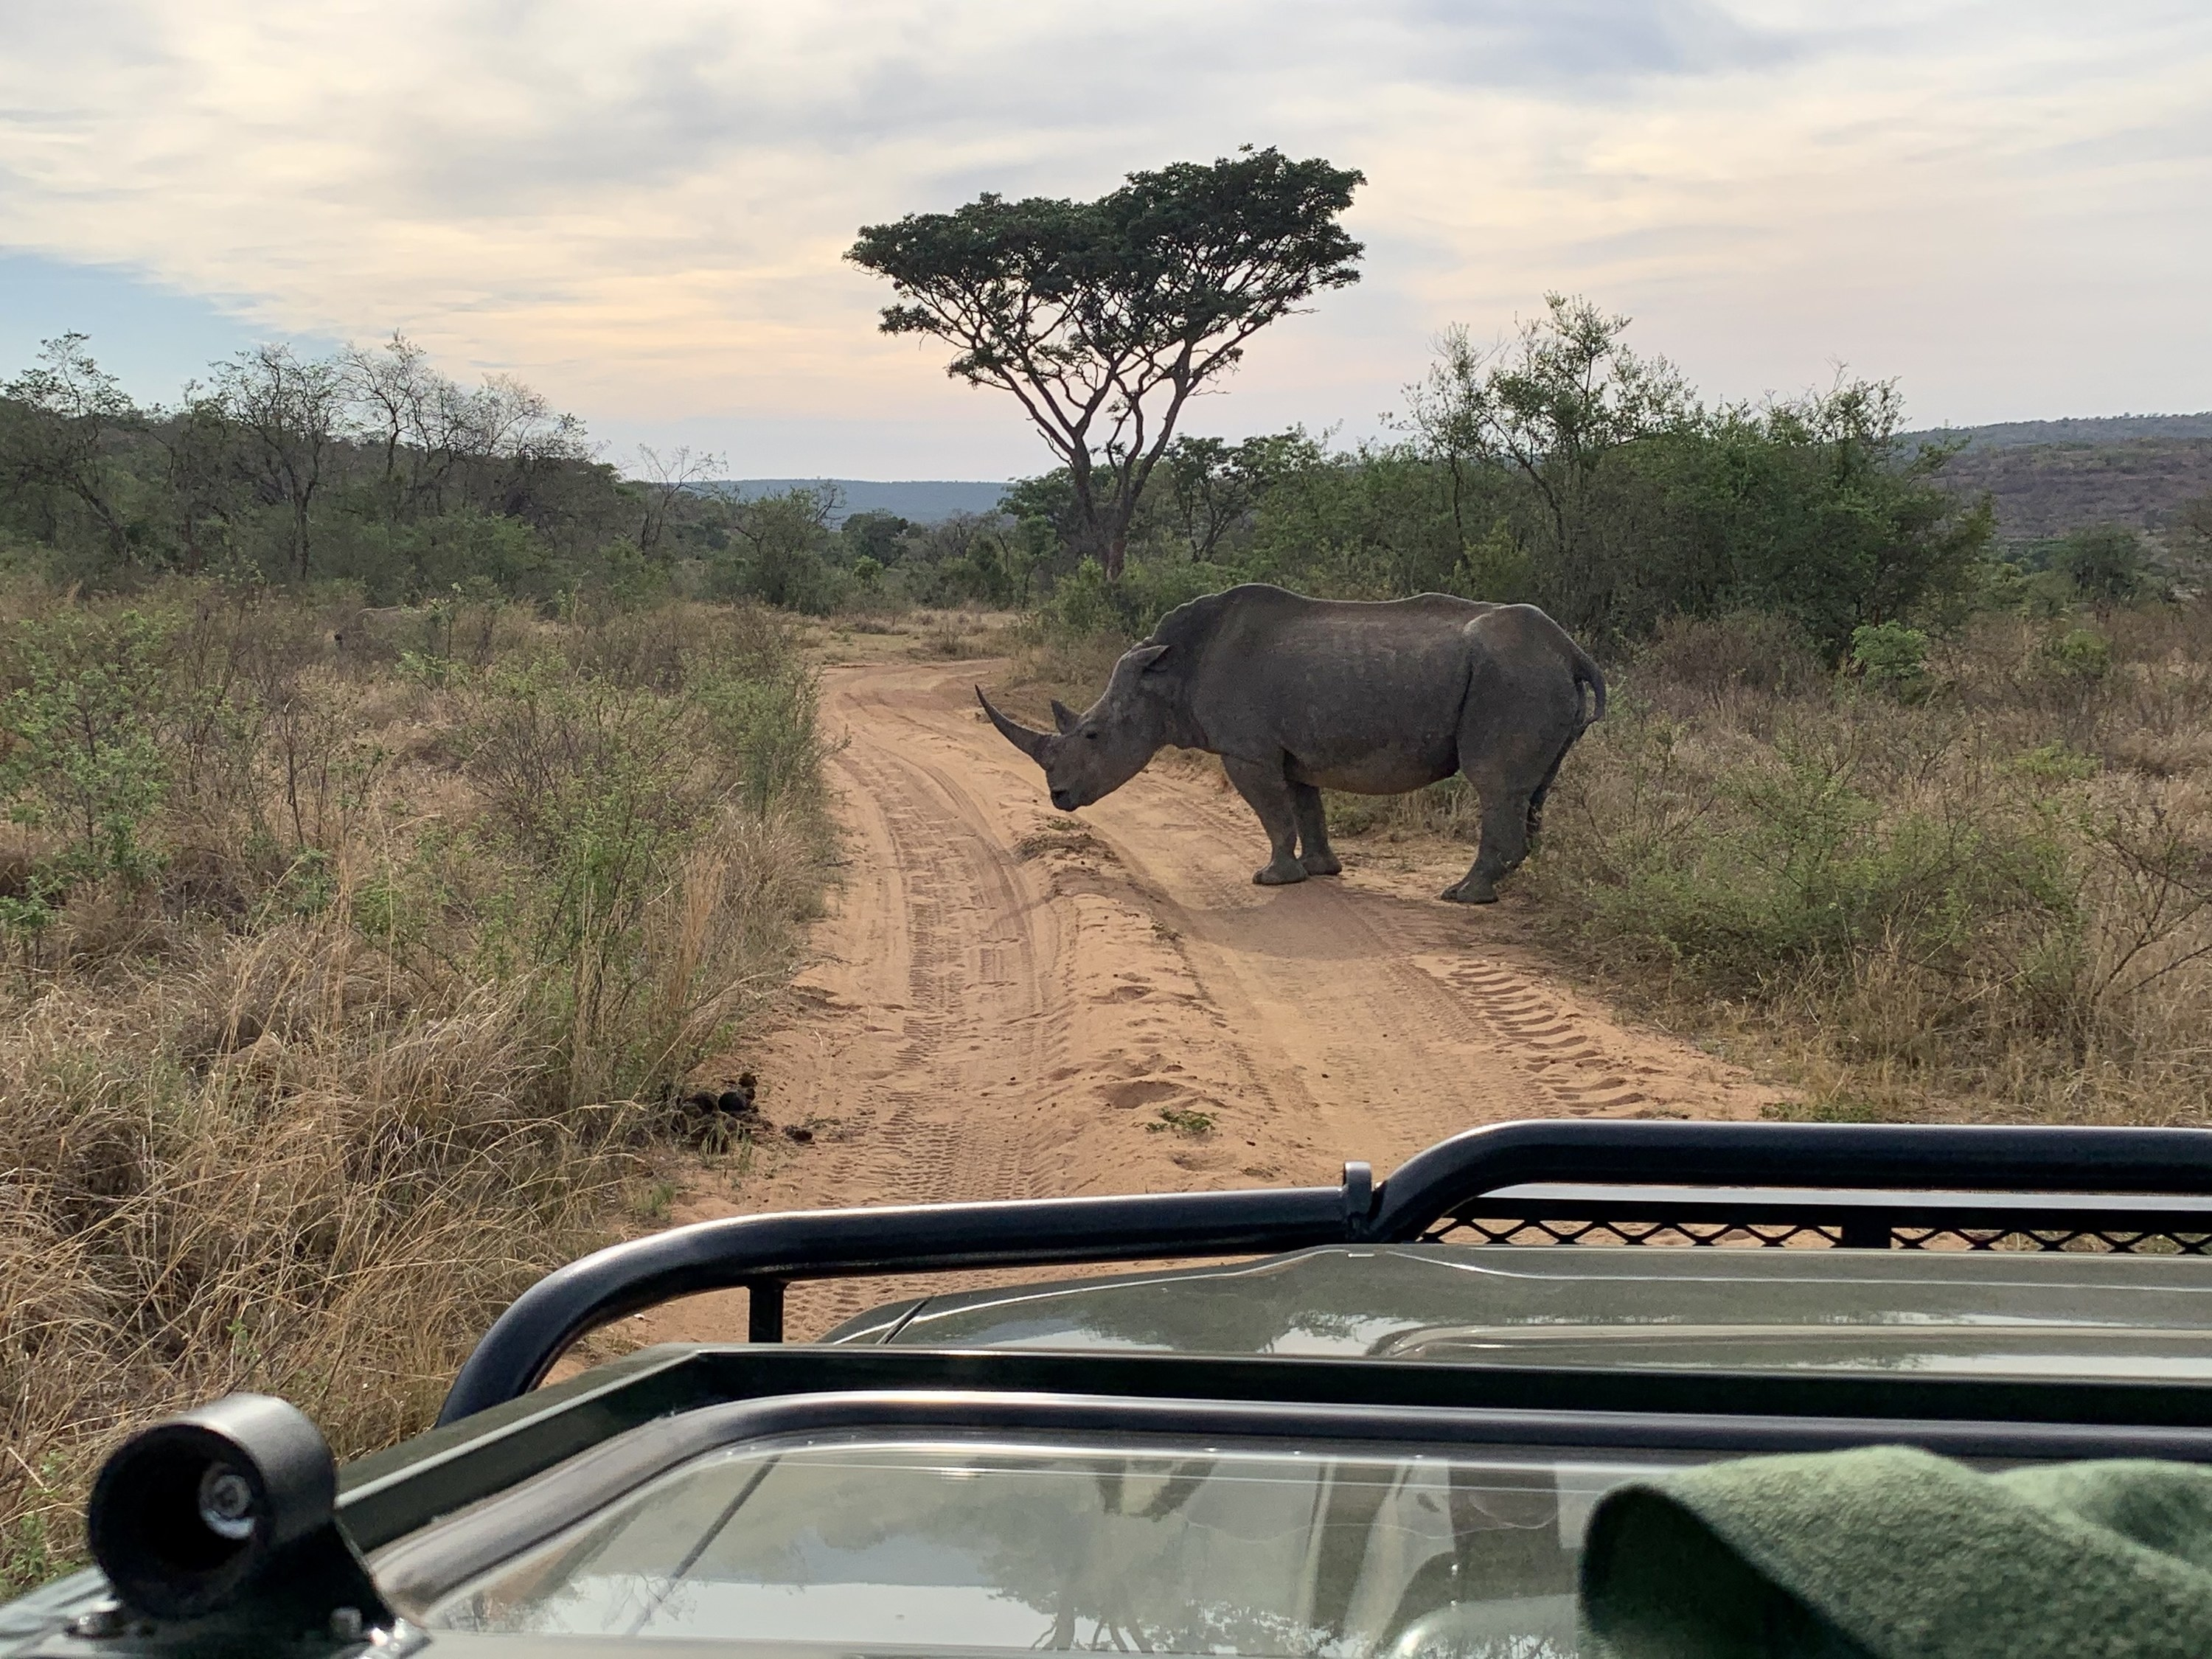 View from a safari car of a Rhino stalling the dusty trail ahead.